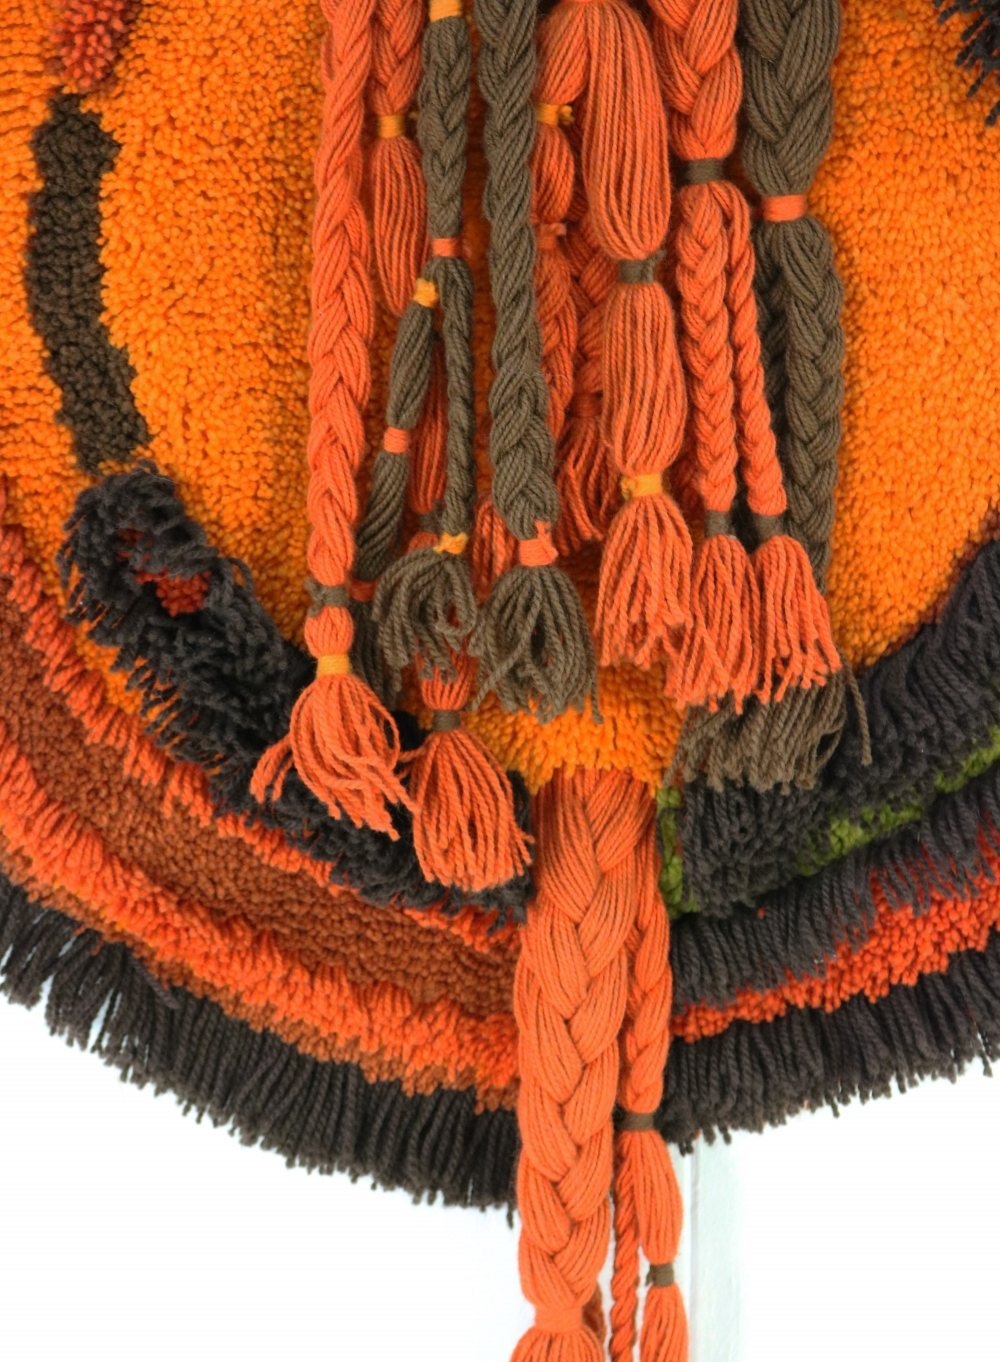 Wool wall carpet decoration in orange colors